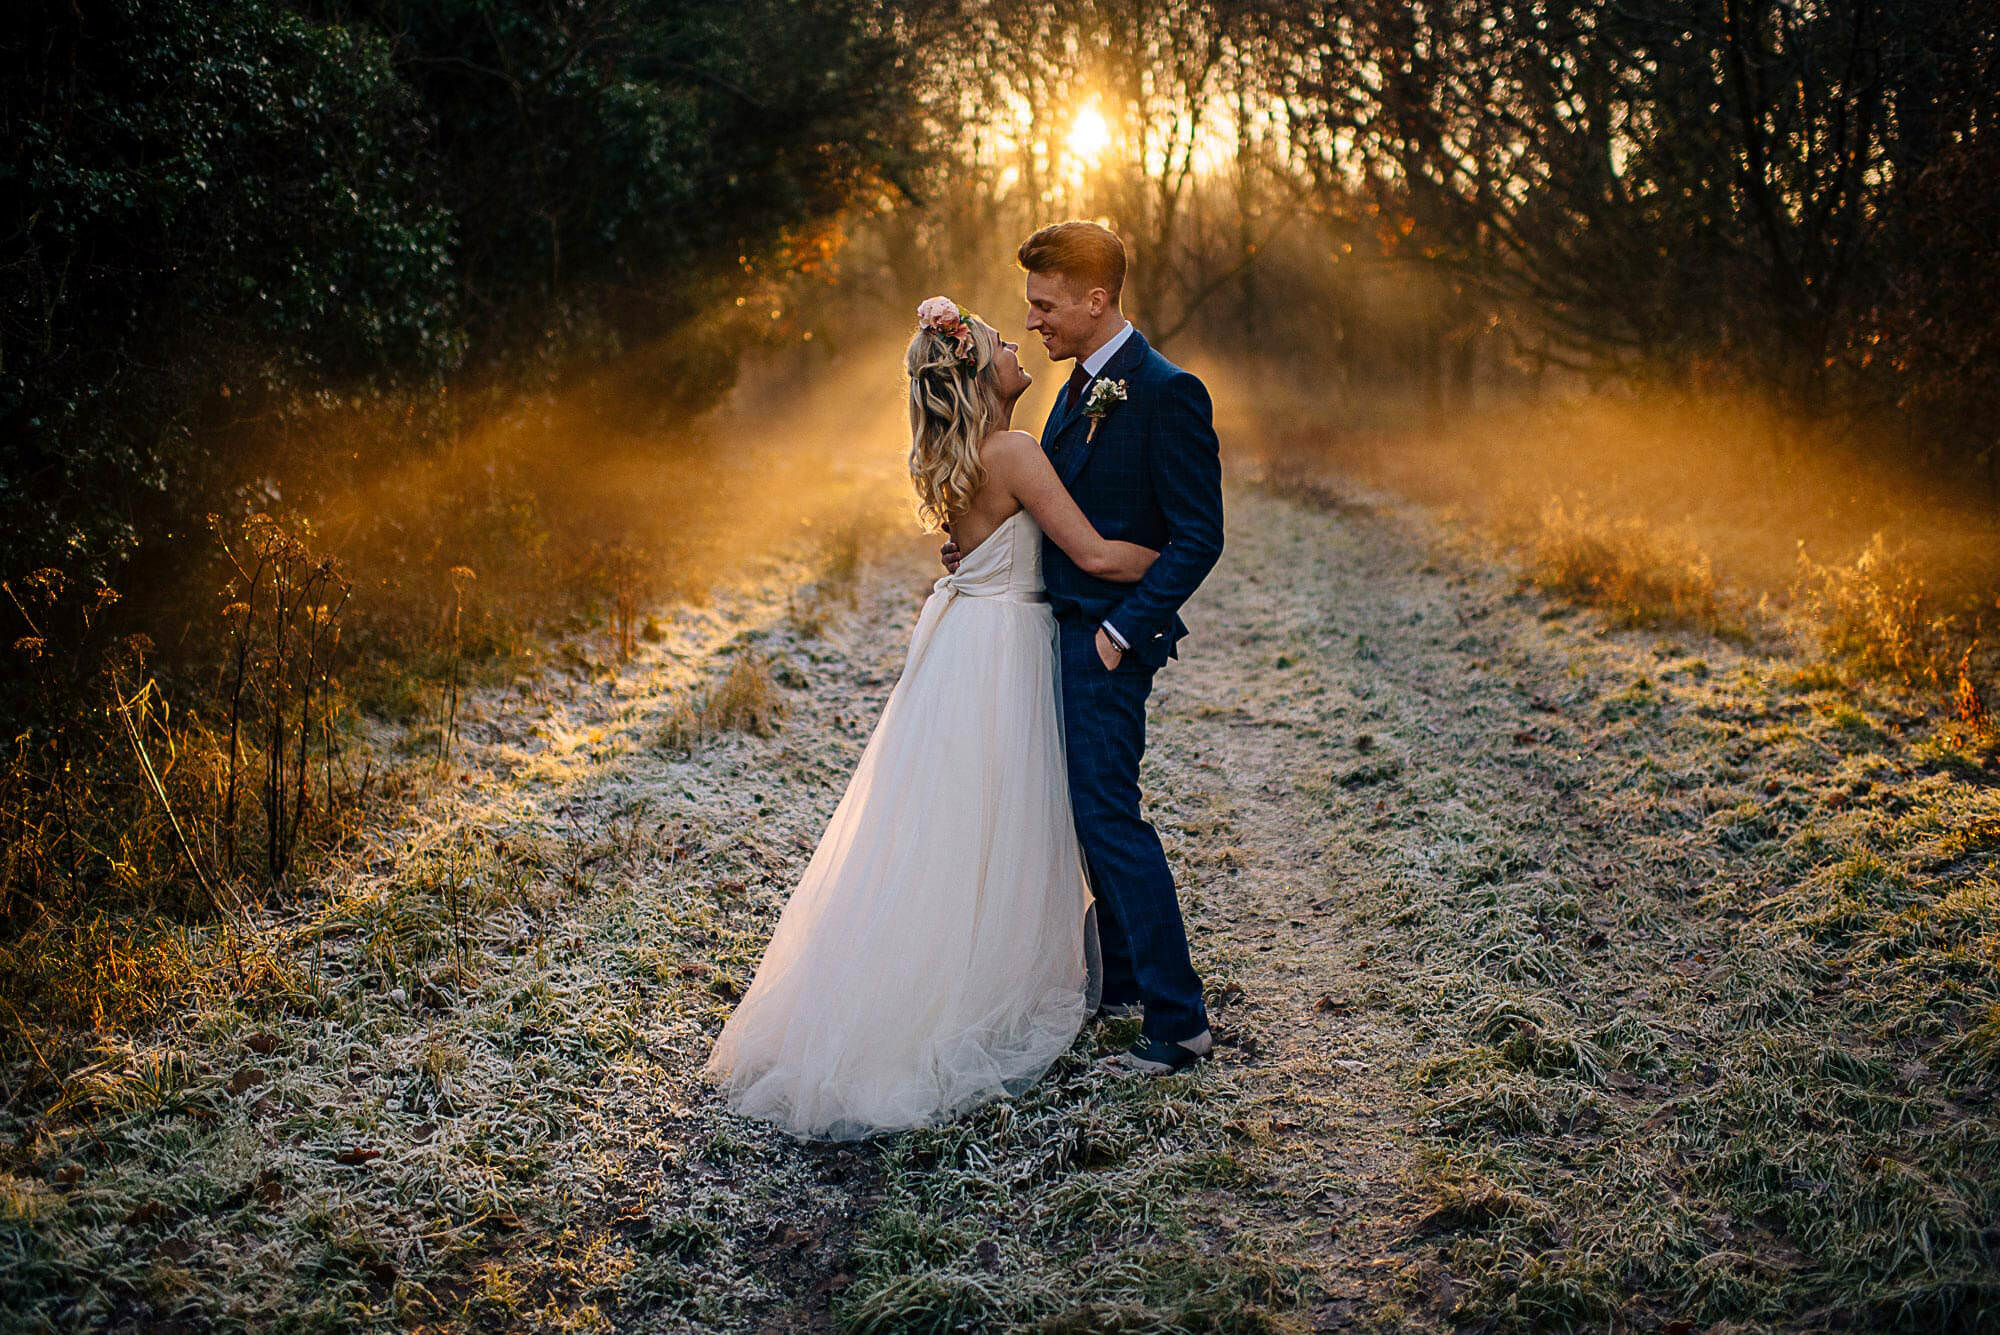 bride and groom in mazing winter light with frost on the grounds and sun setting behind them. golden hour wedding photography